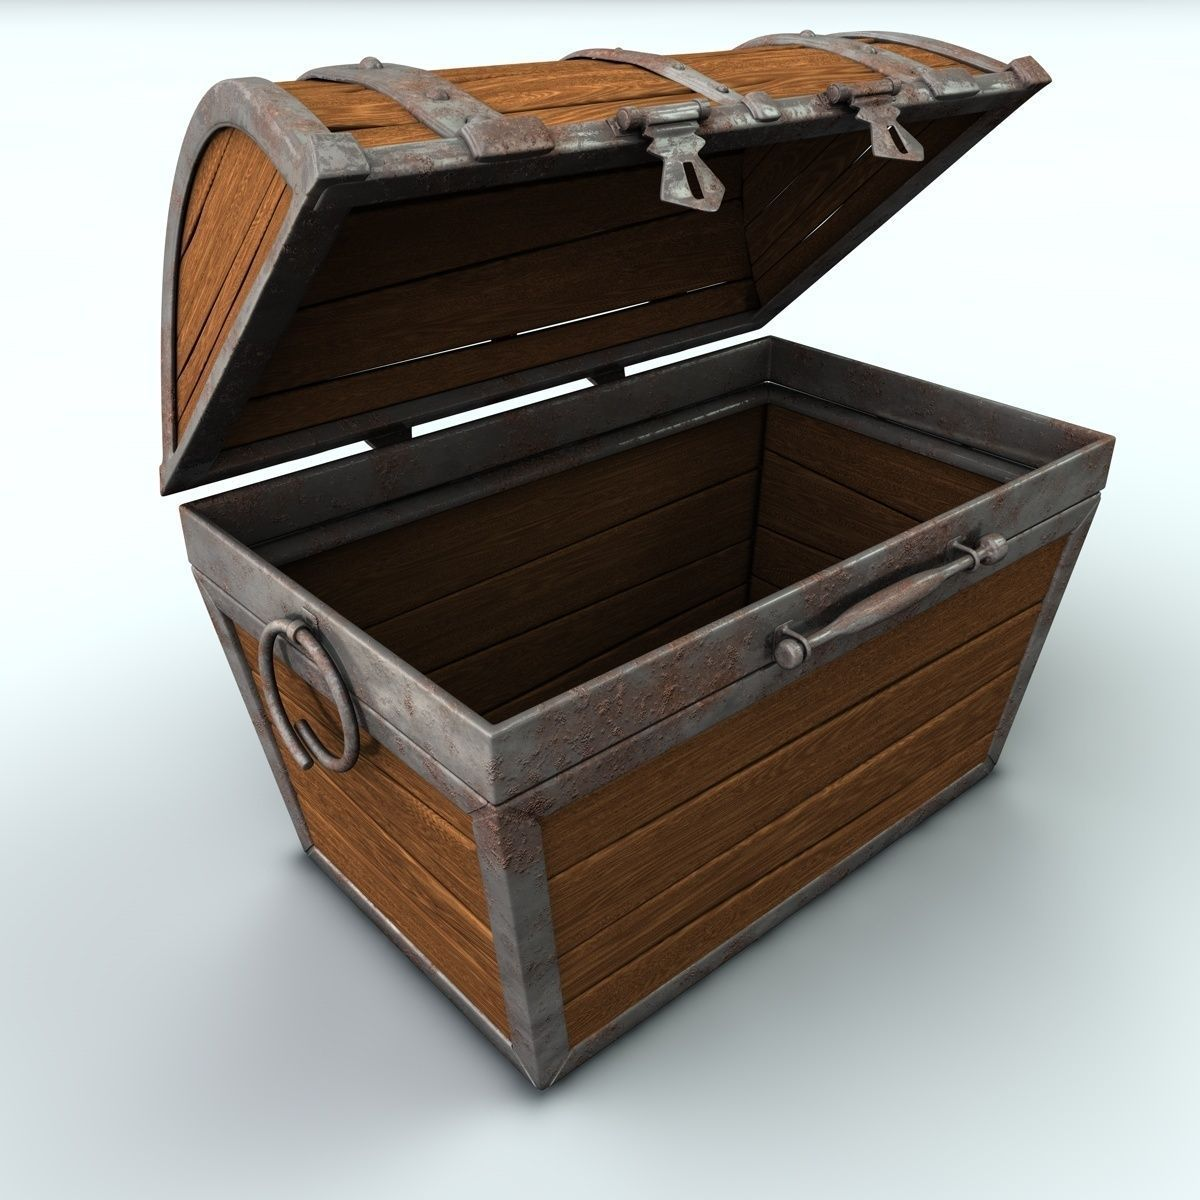 Treasure Chest With Gold 3d Model Obj 3ds Fbx C4d